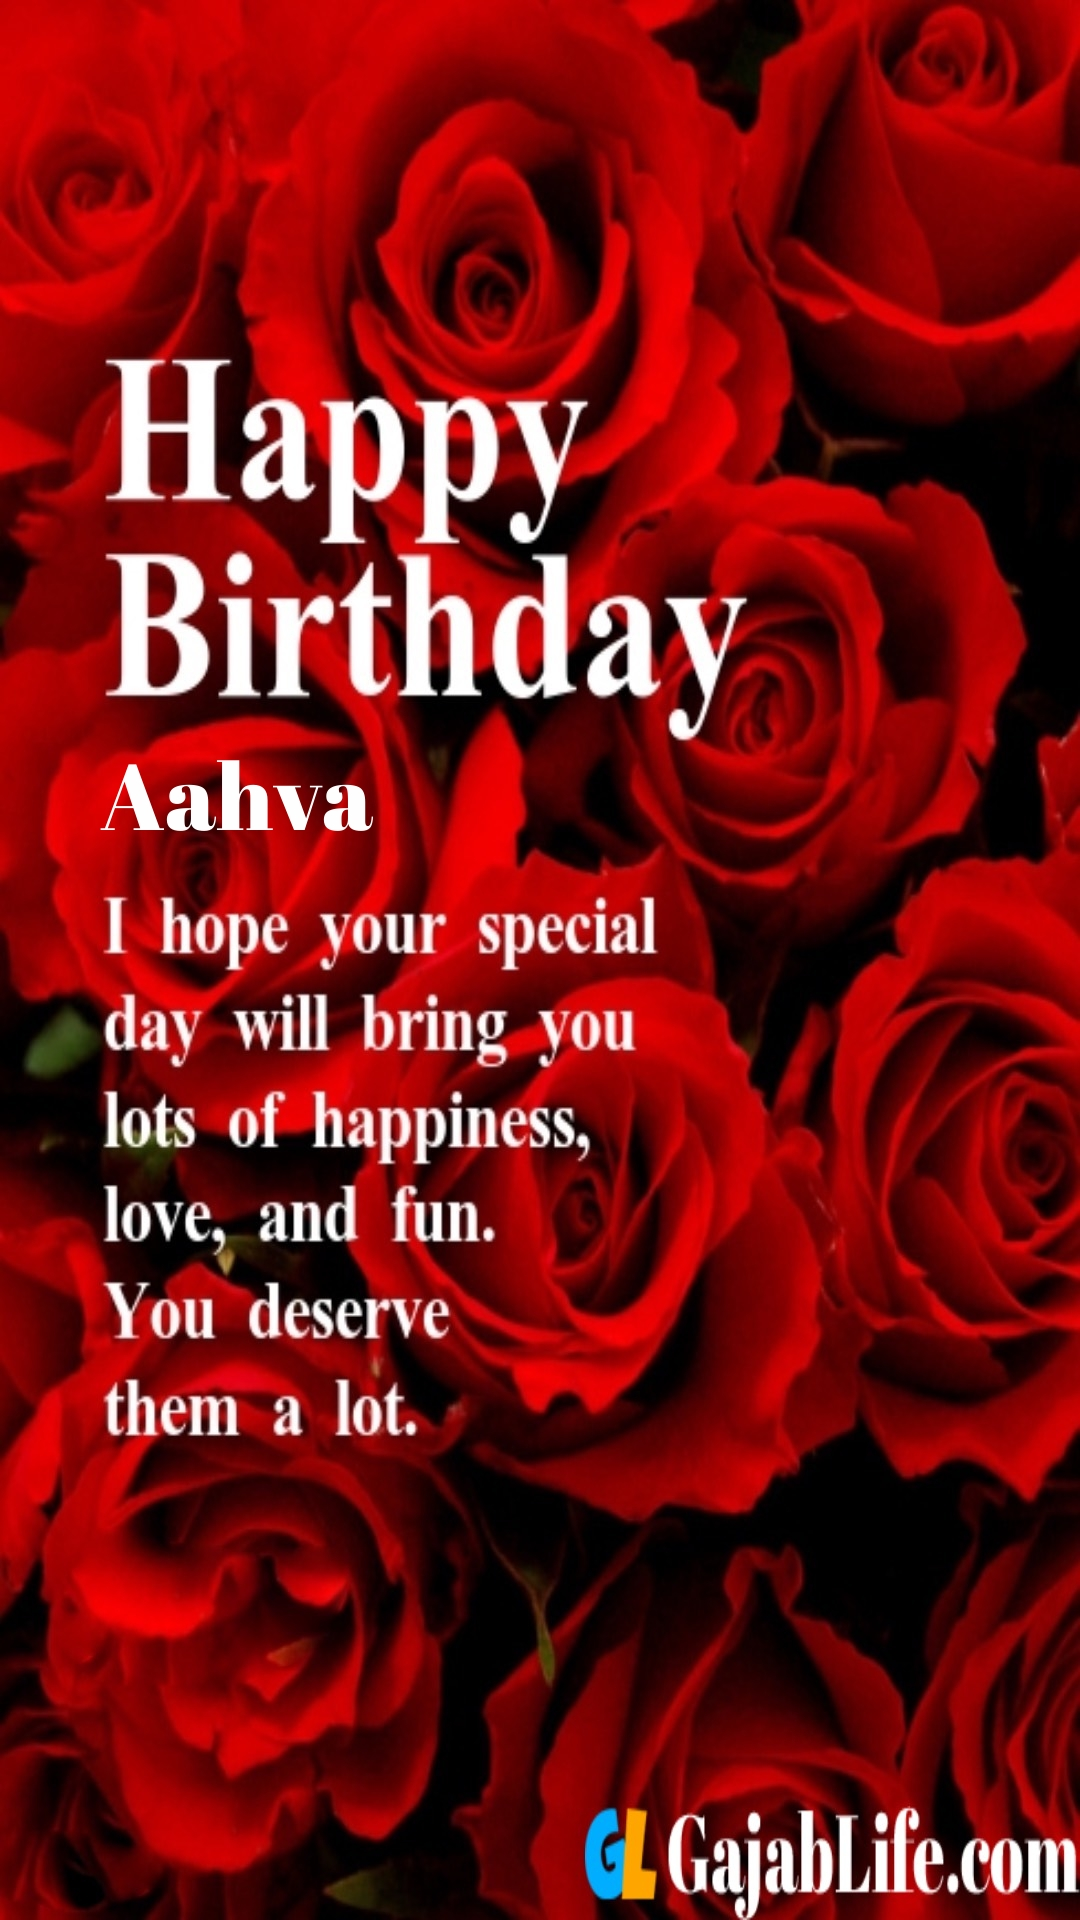 Aahva birthday greeting card with rose & love